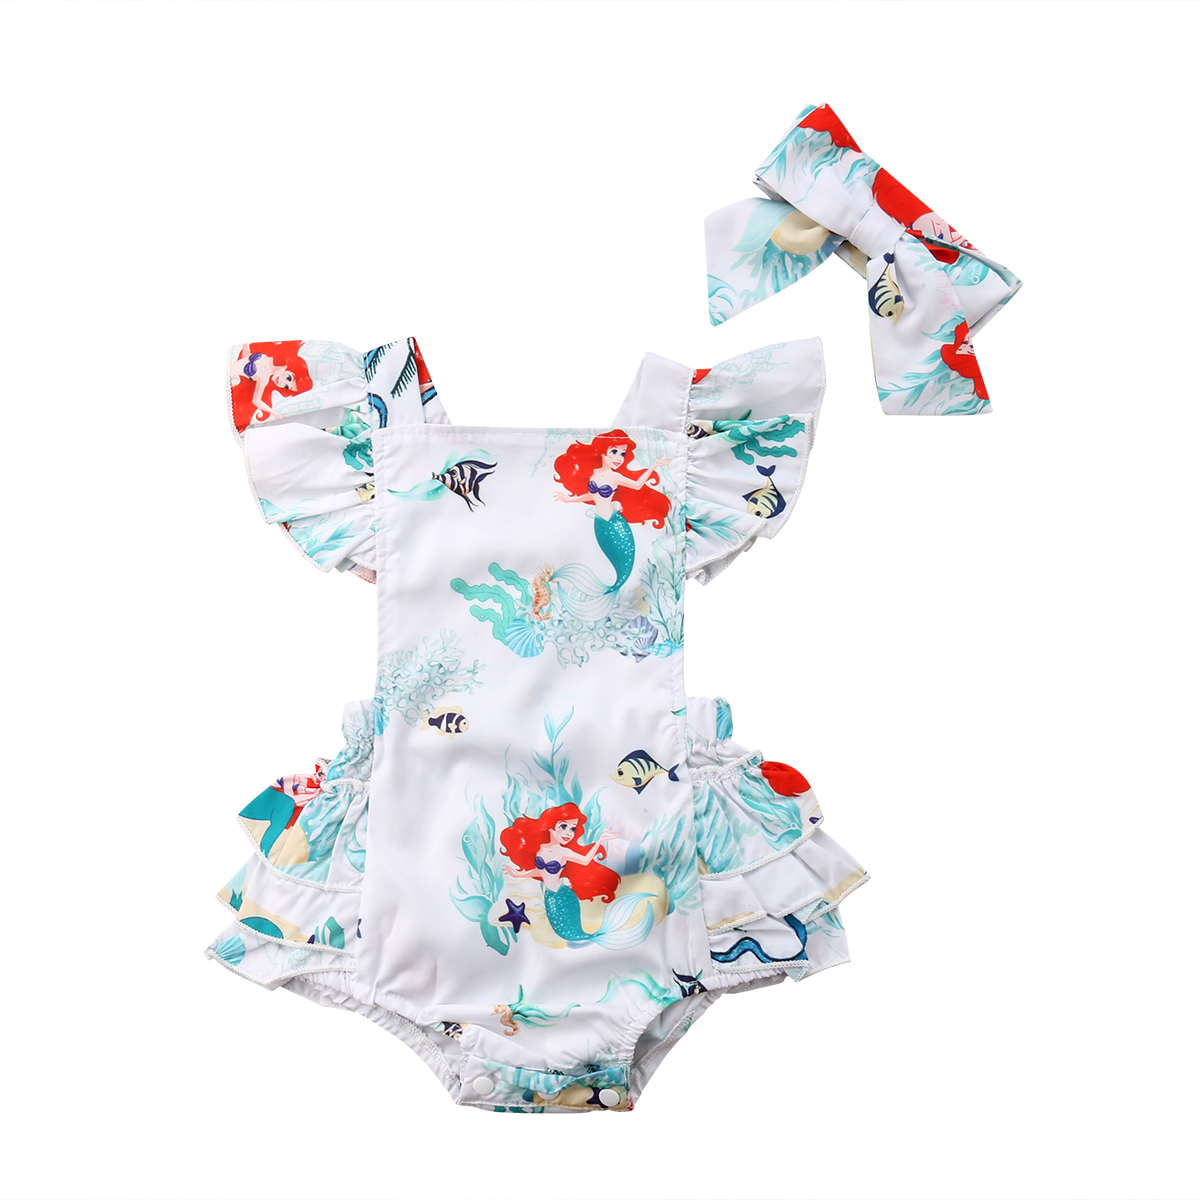 2019 Summer New Toddler Infant Baby Girls Cute Cotton Sleeveless Cartoon Mermaid Backless Lace Dress   Romper   Outfits 0-2T